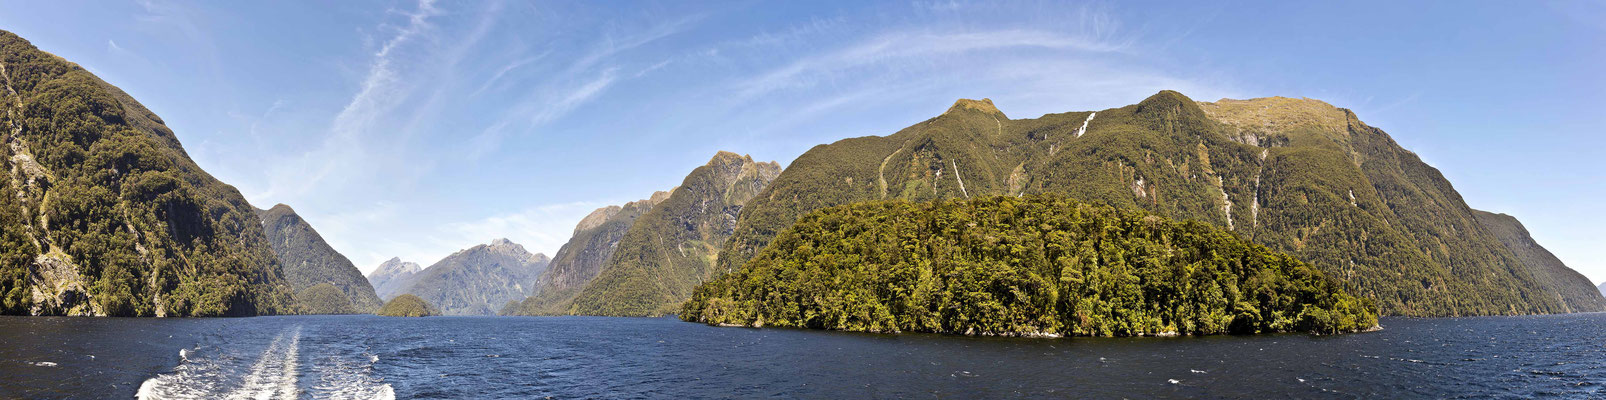 Doubtful Sound - Neuseeland / Südinsel